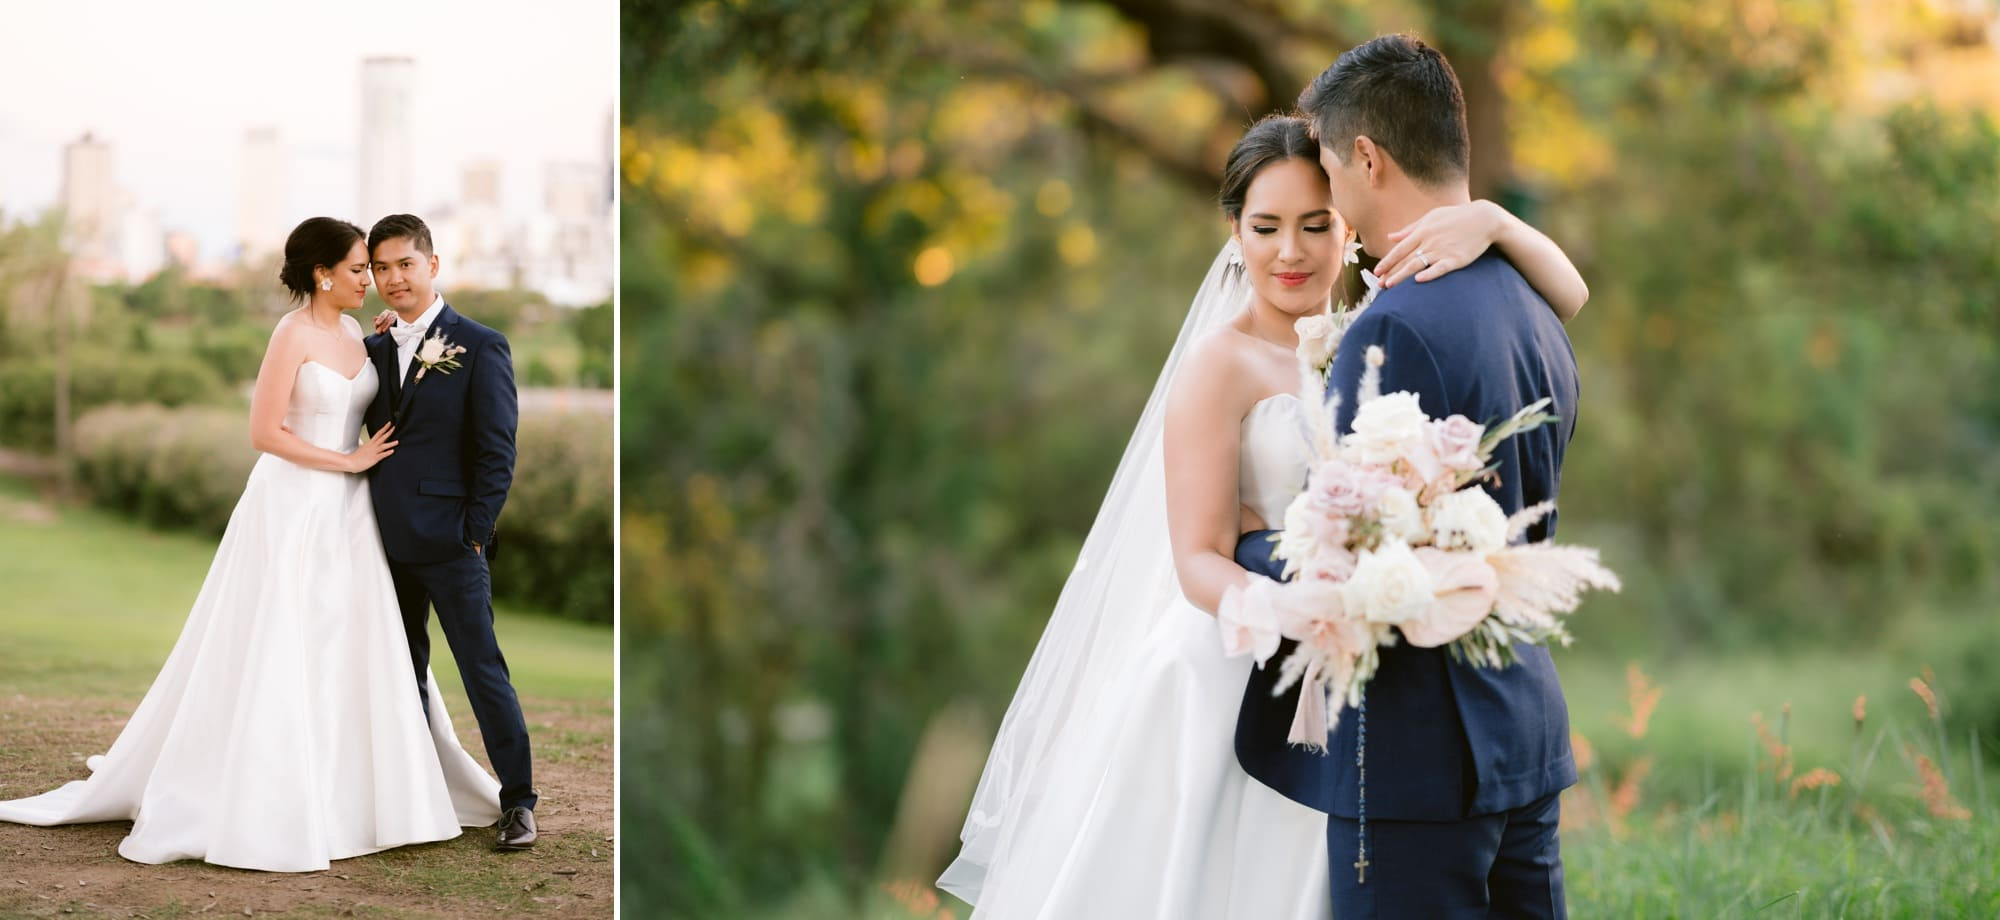 Victoria Park wedding photographer bride portraits groom golf course